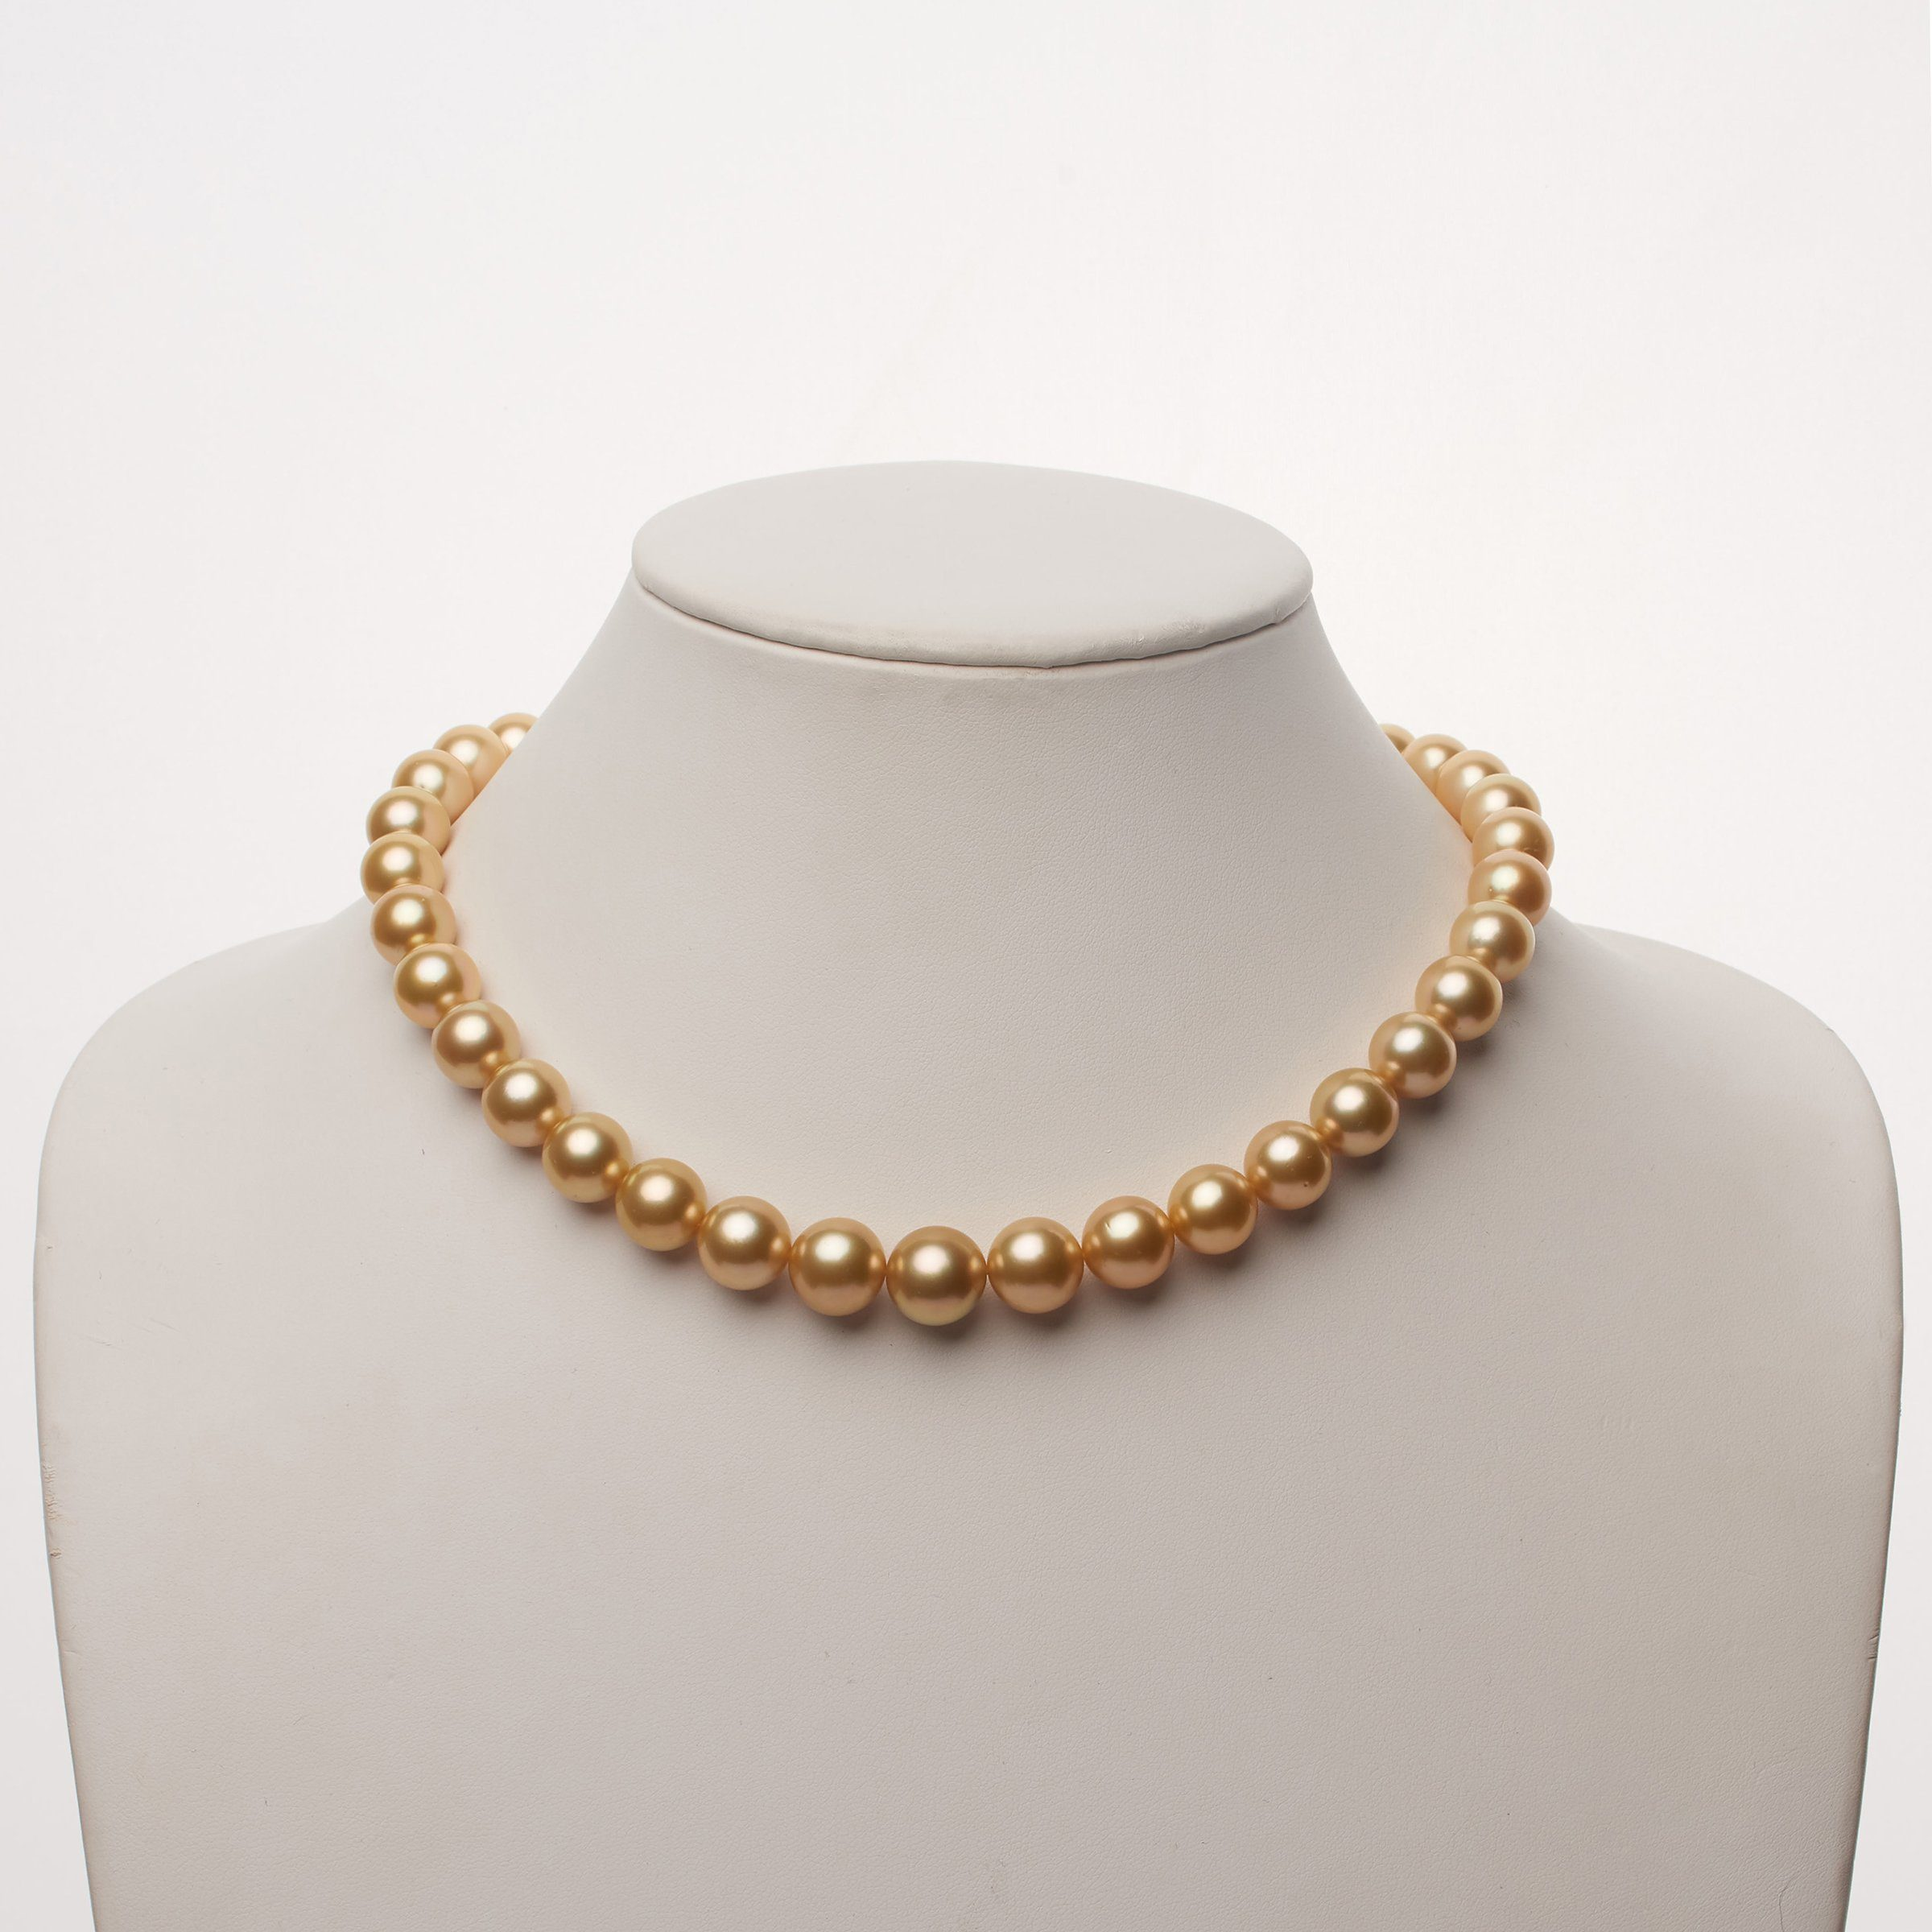 10.0-12.4 mm AAA  Golden South Sea Round Pearl Necklace